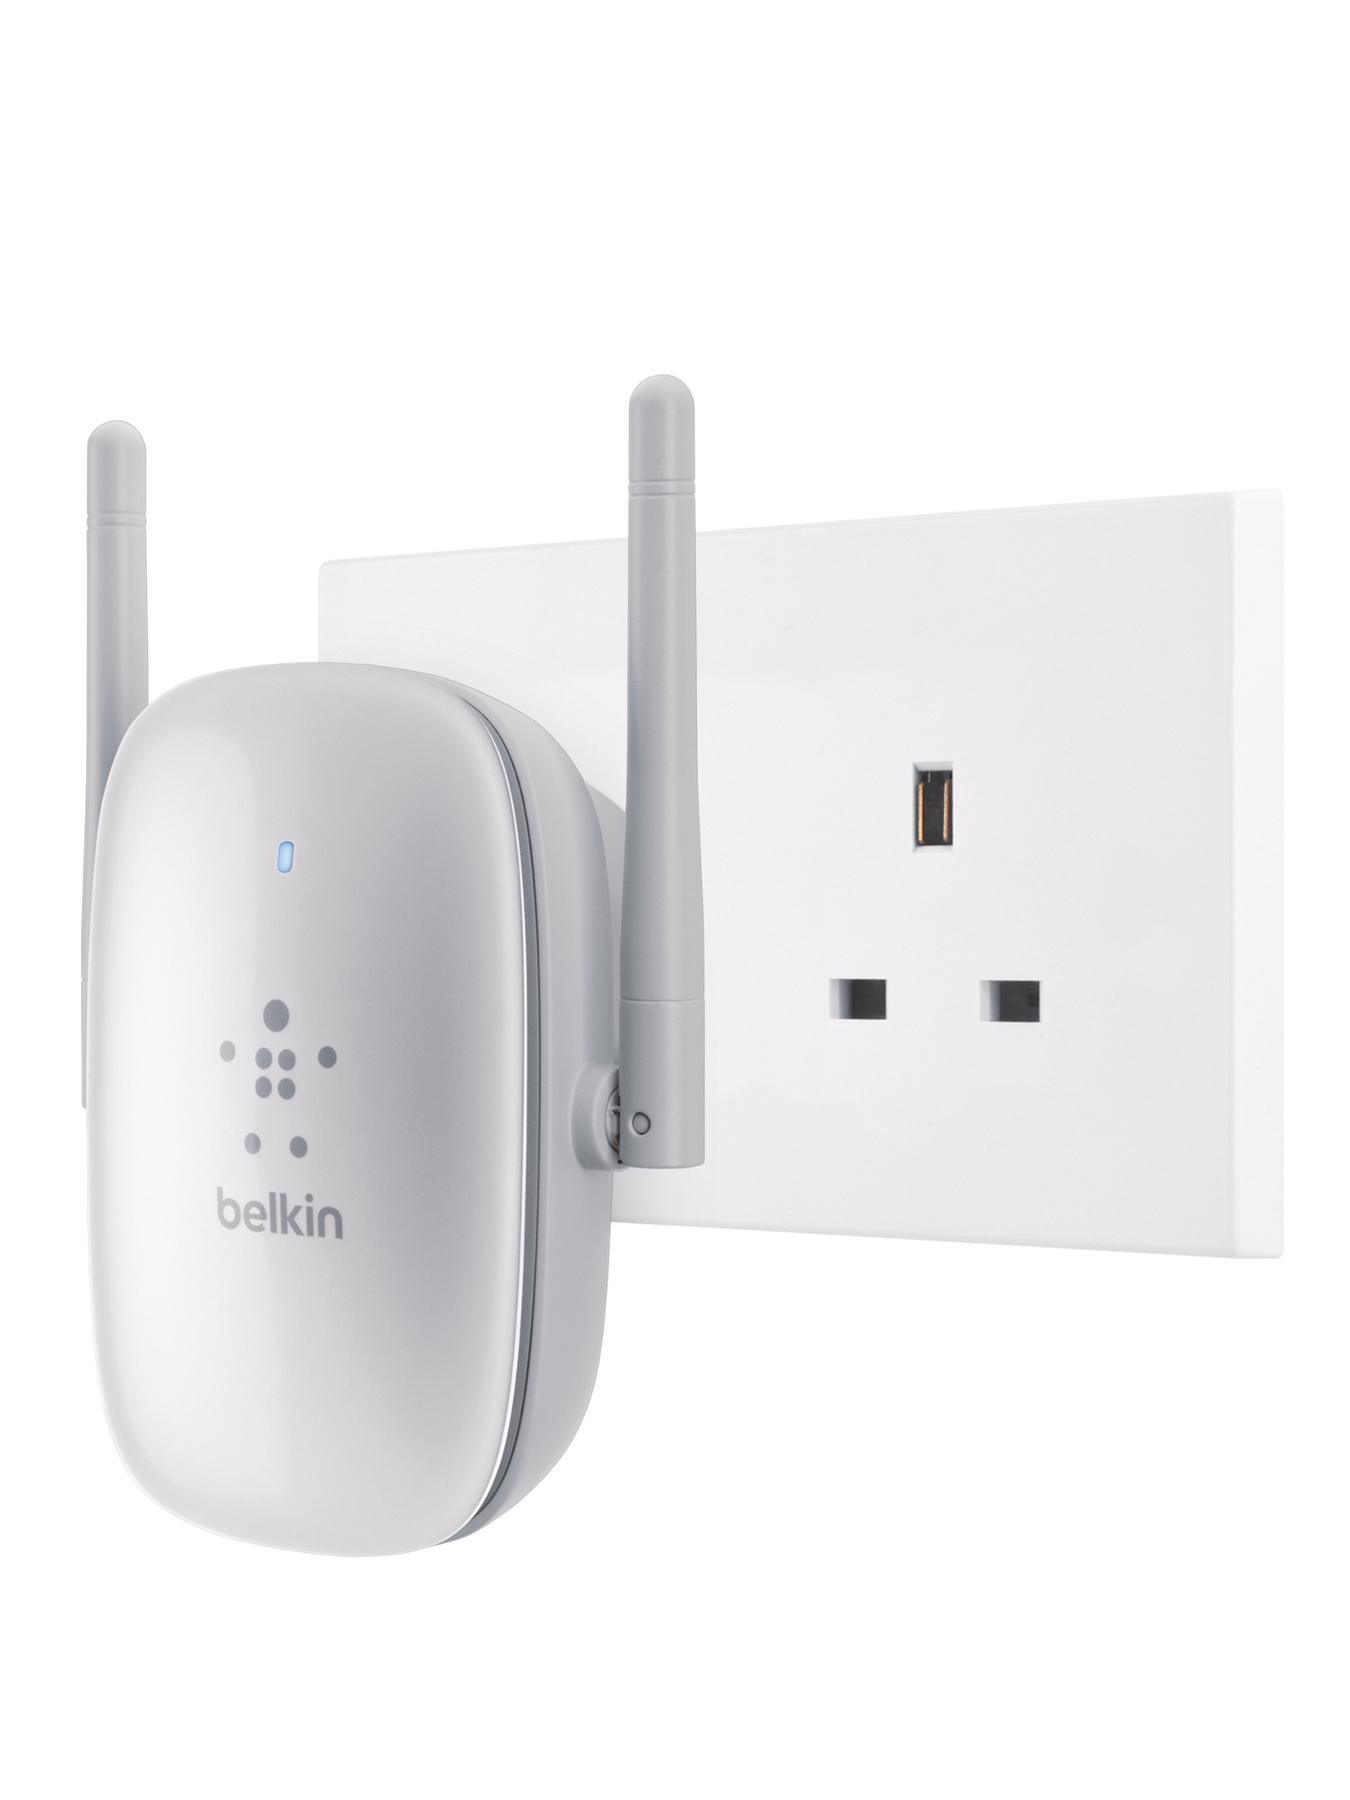 Wireless Dual- Band Wi-Fi Range Extender N600 (Wall Mounted)